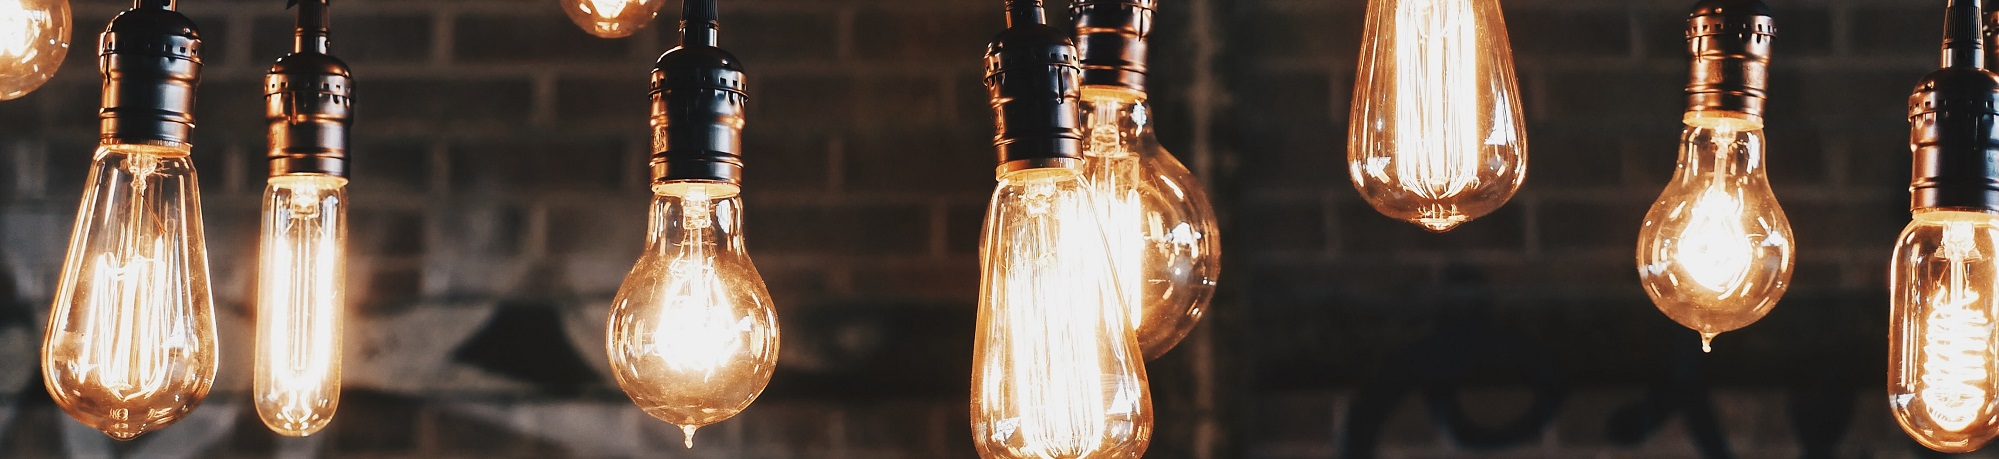 Is now the time to turn that bright idea into a business?